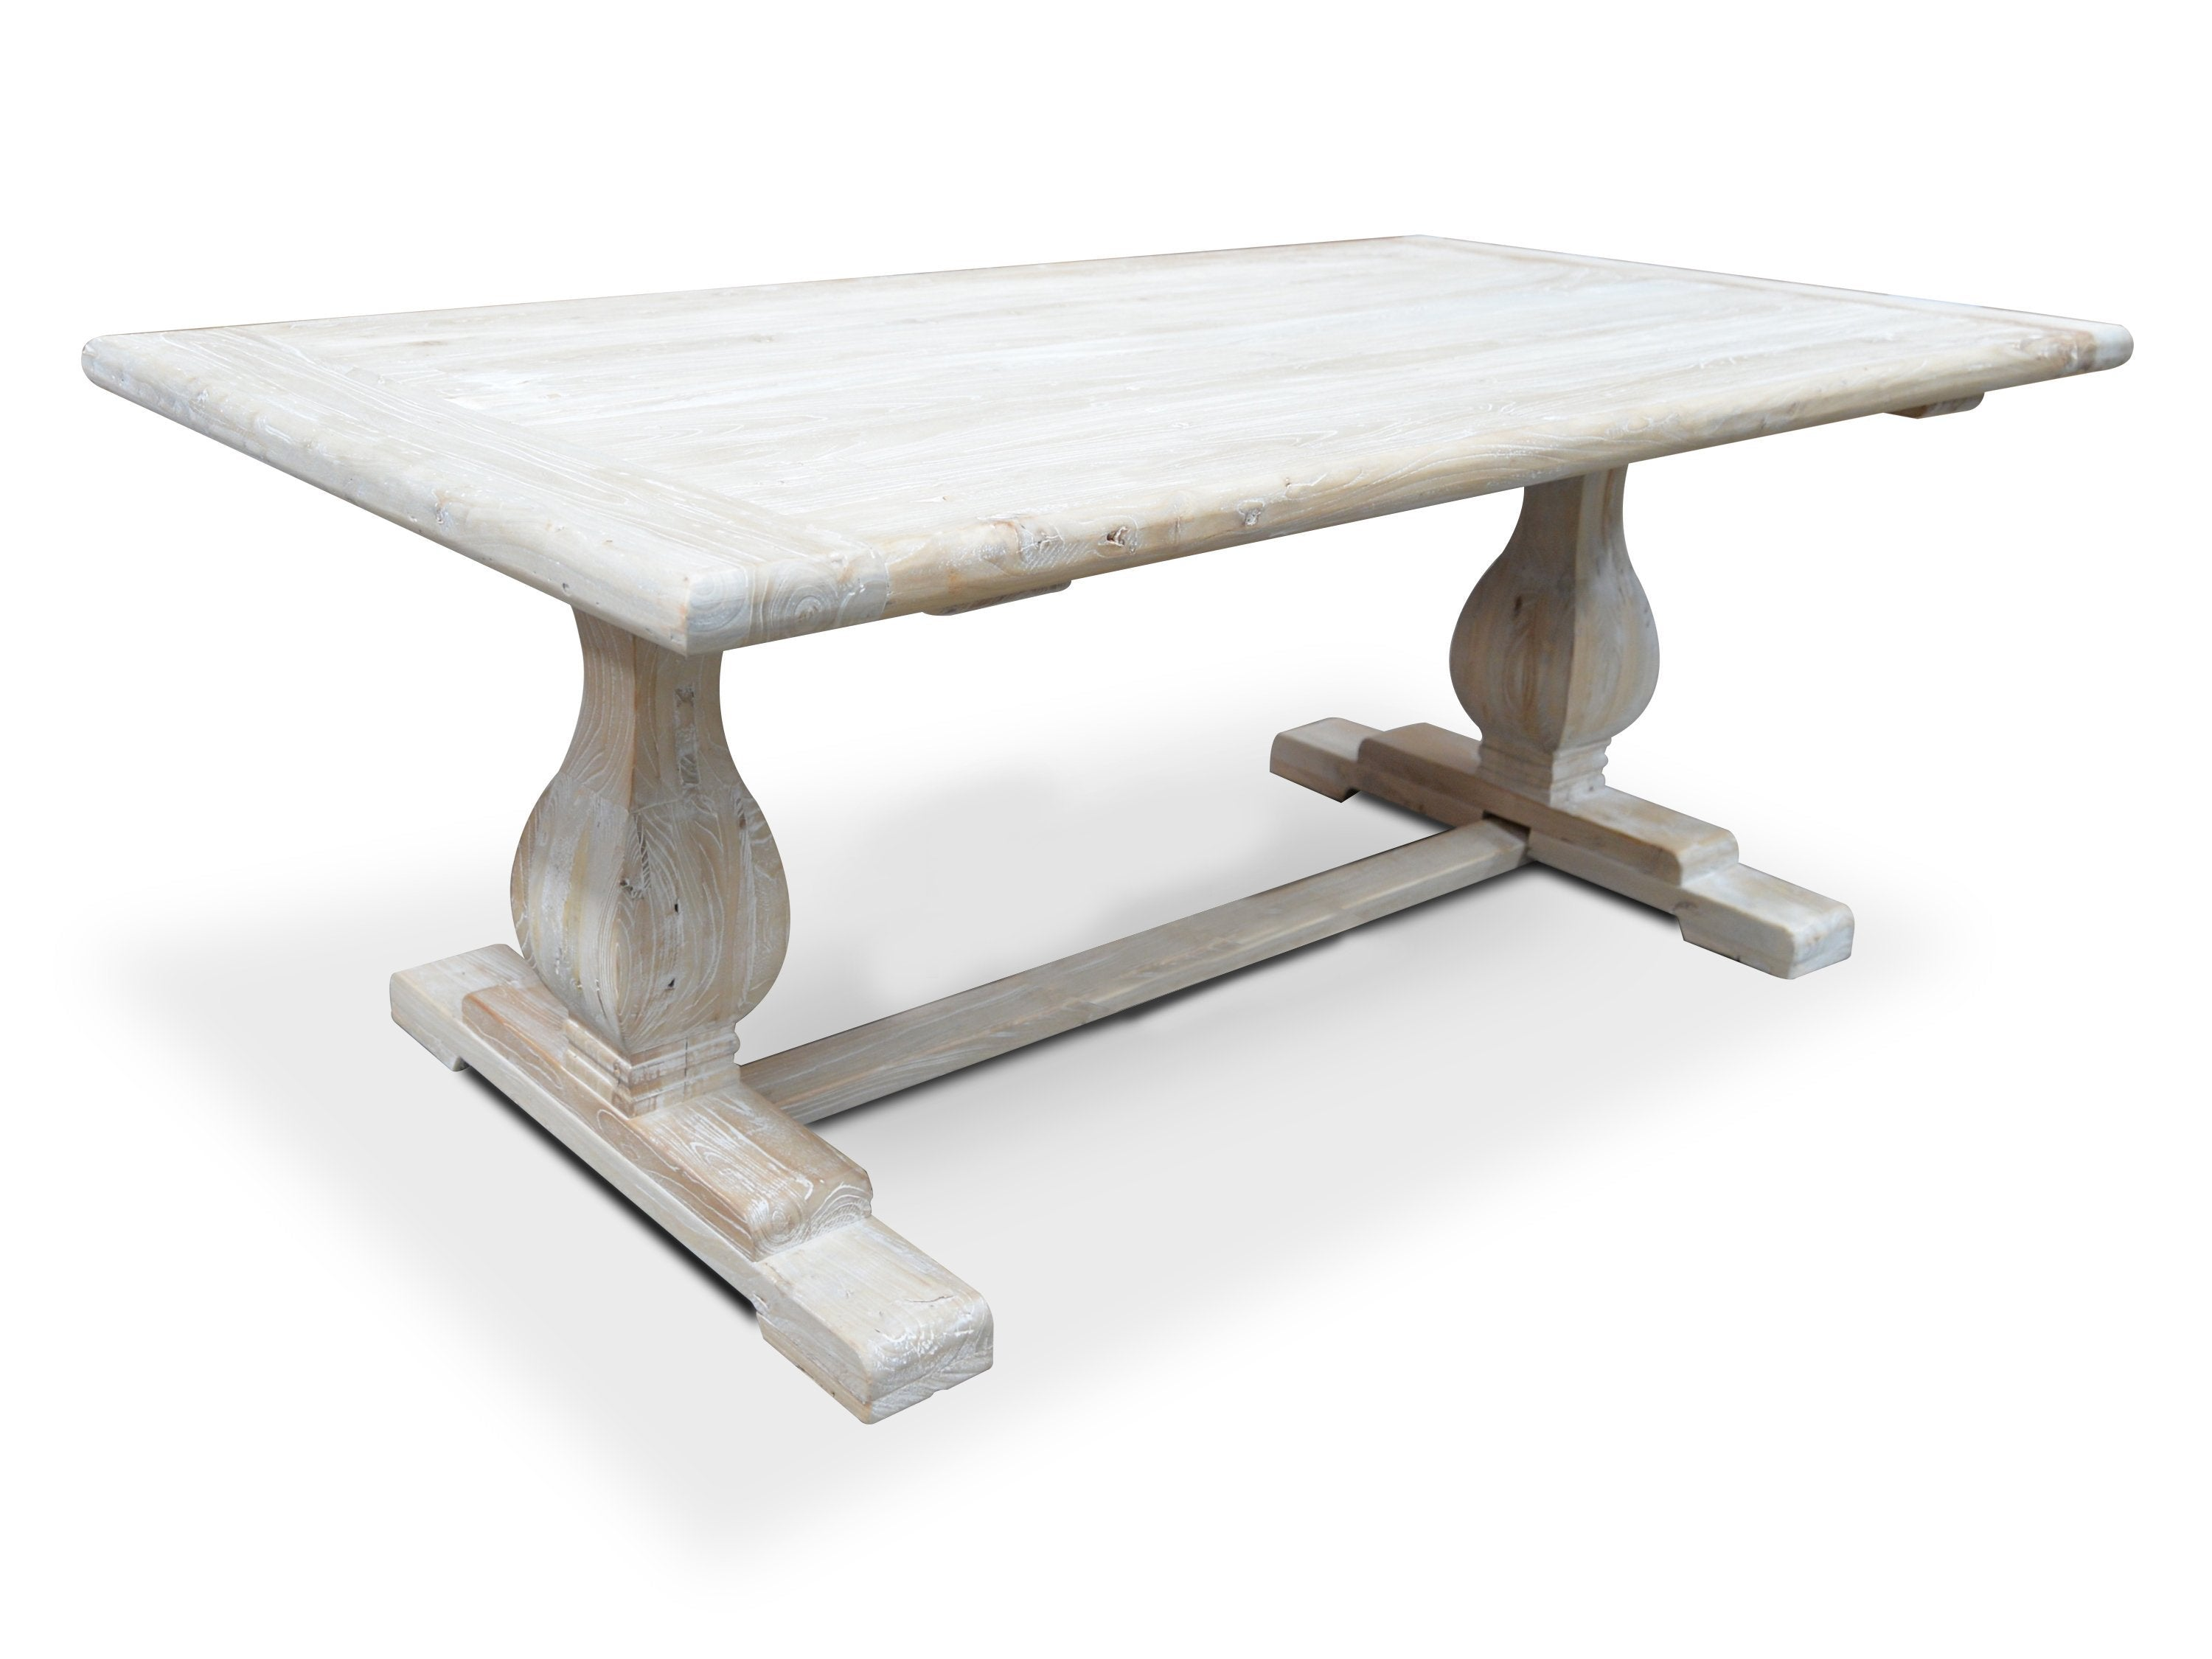 Titan Reclaimed 1.98m ELM Wood Dining Table - Rustic White Washed